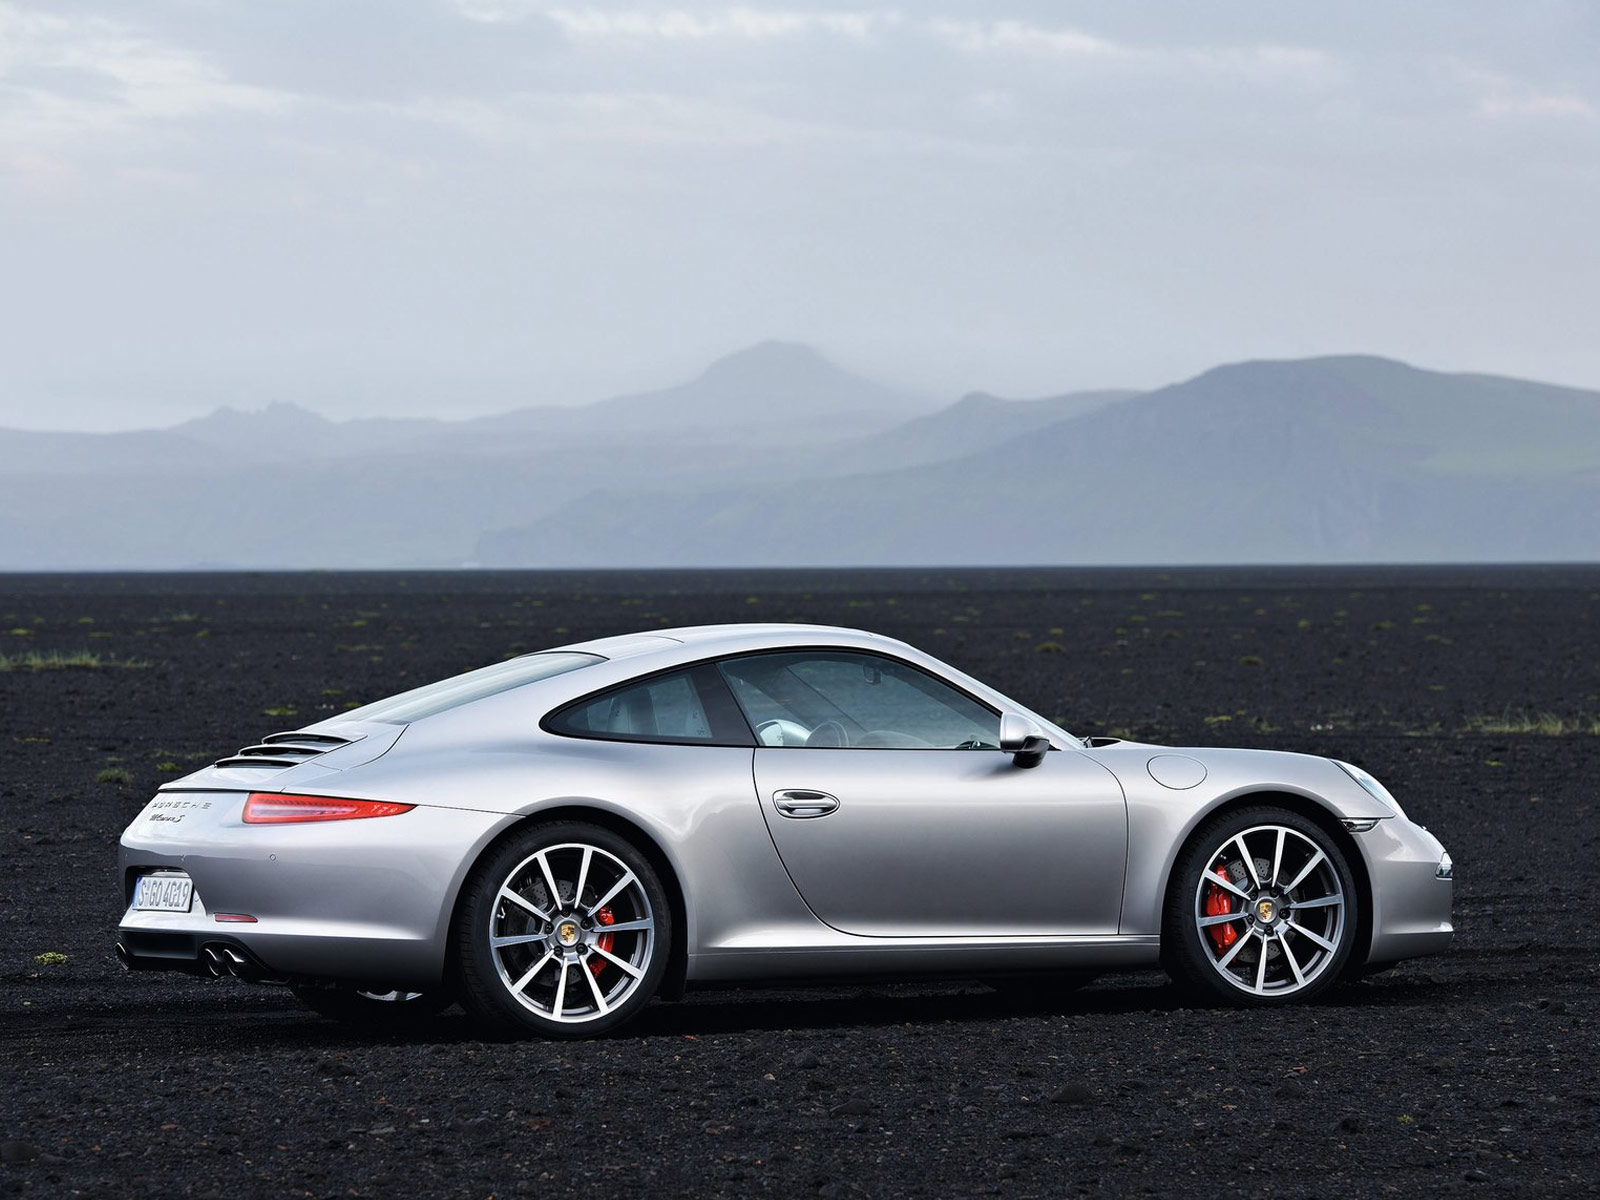 2013 Porsche 911 Carrera S Car Desktop Wallpaper